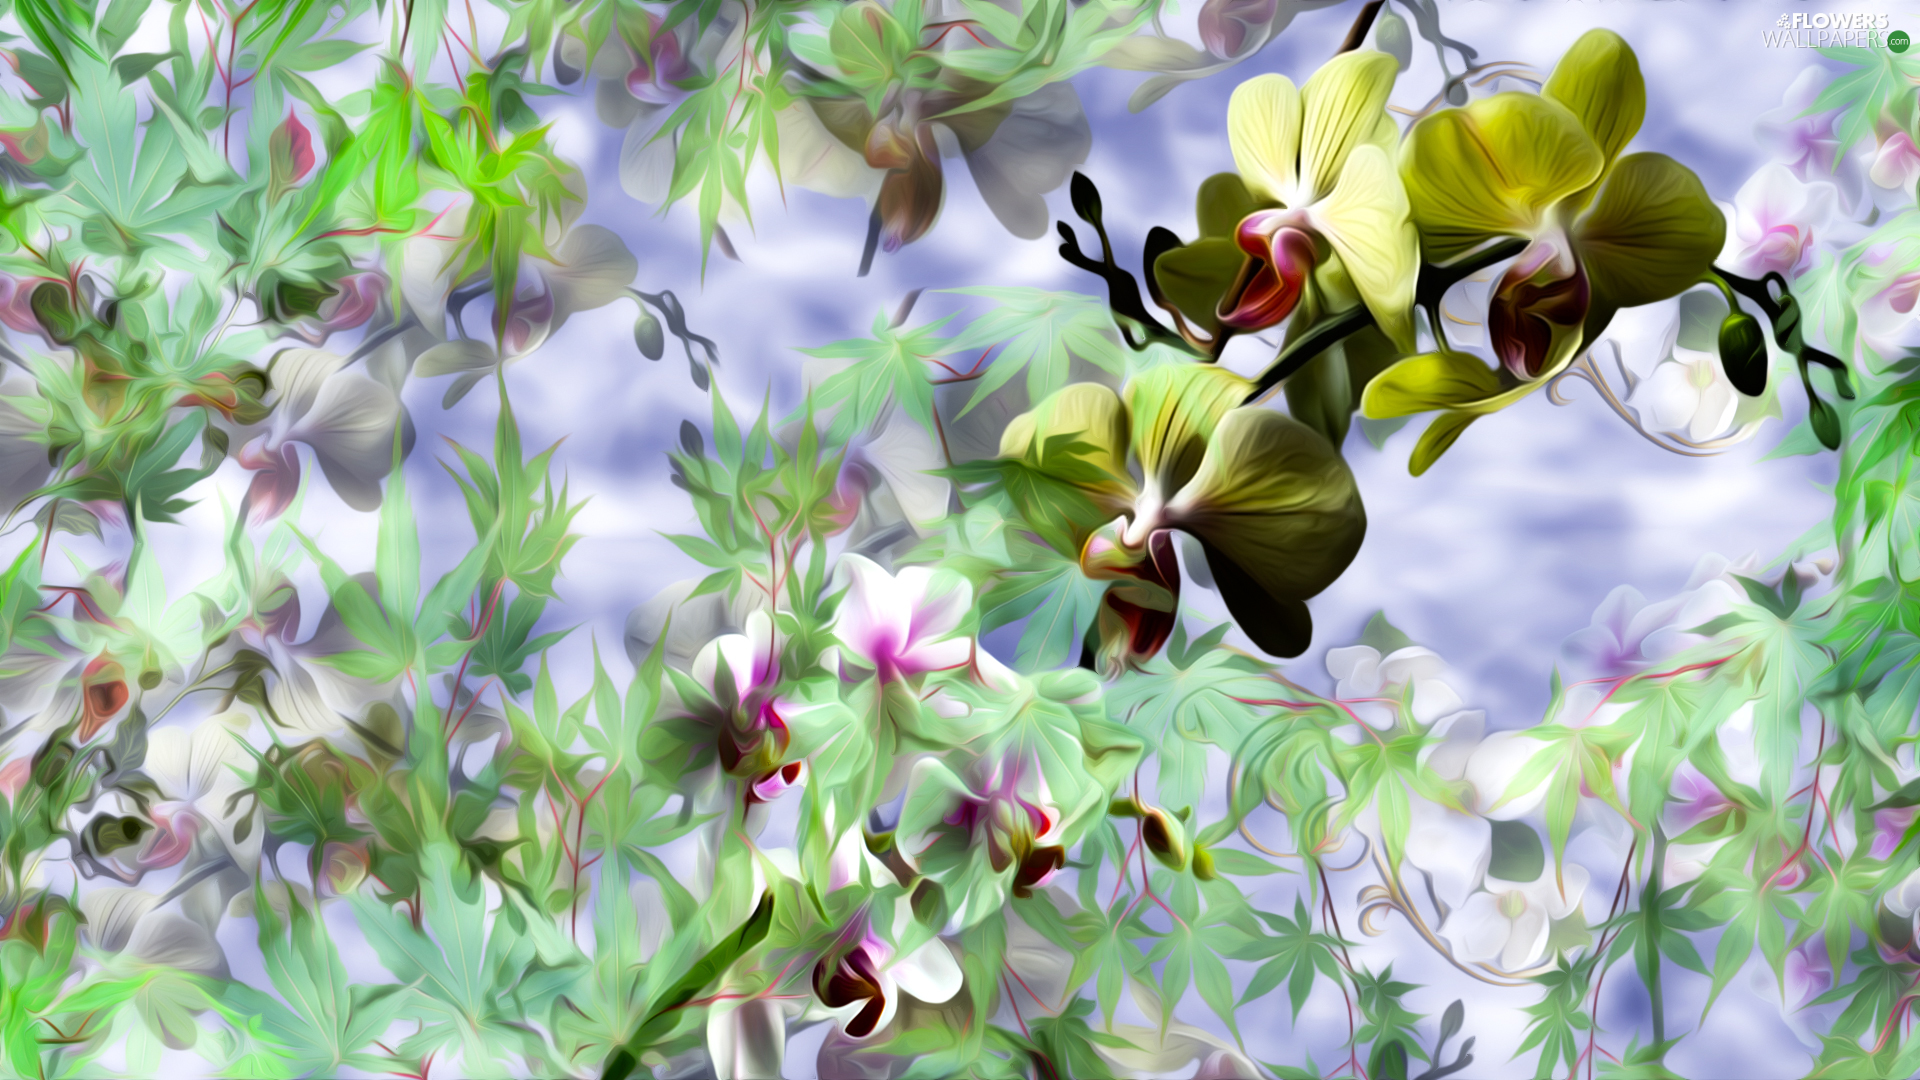 Flowers, Leaf, graphics, orchids